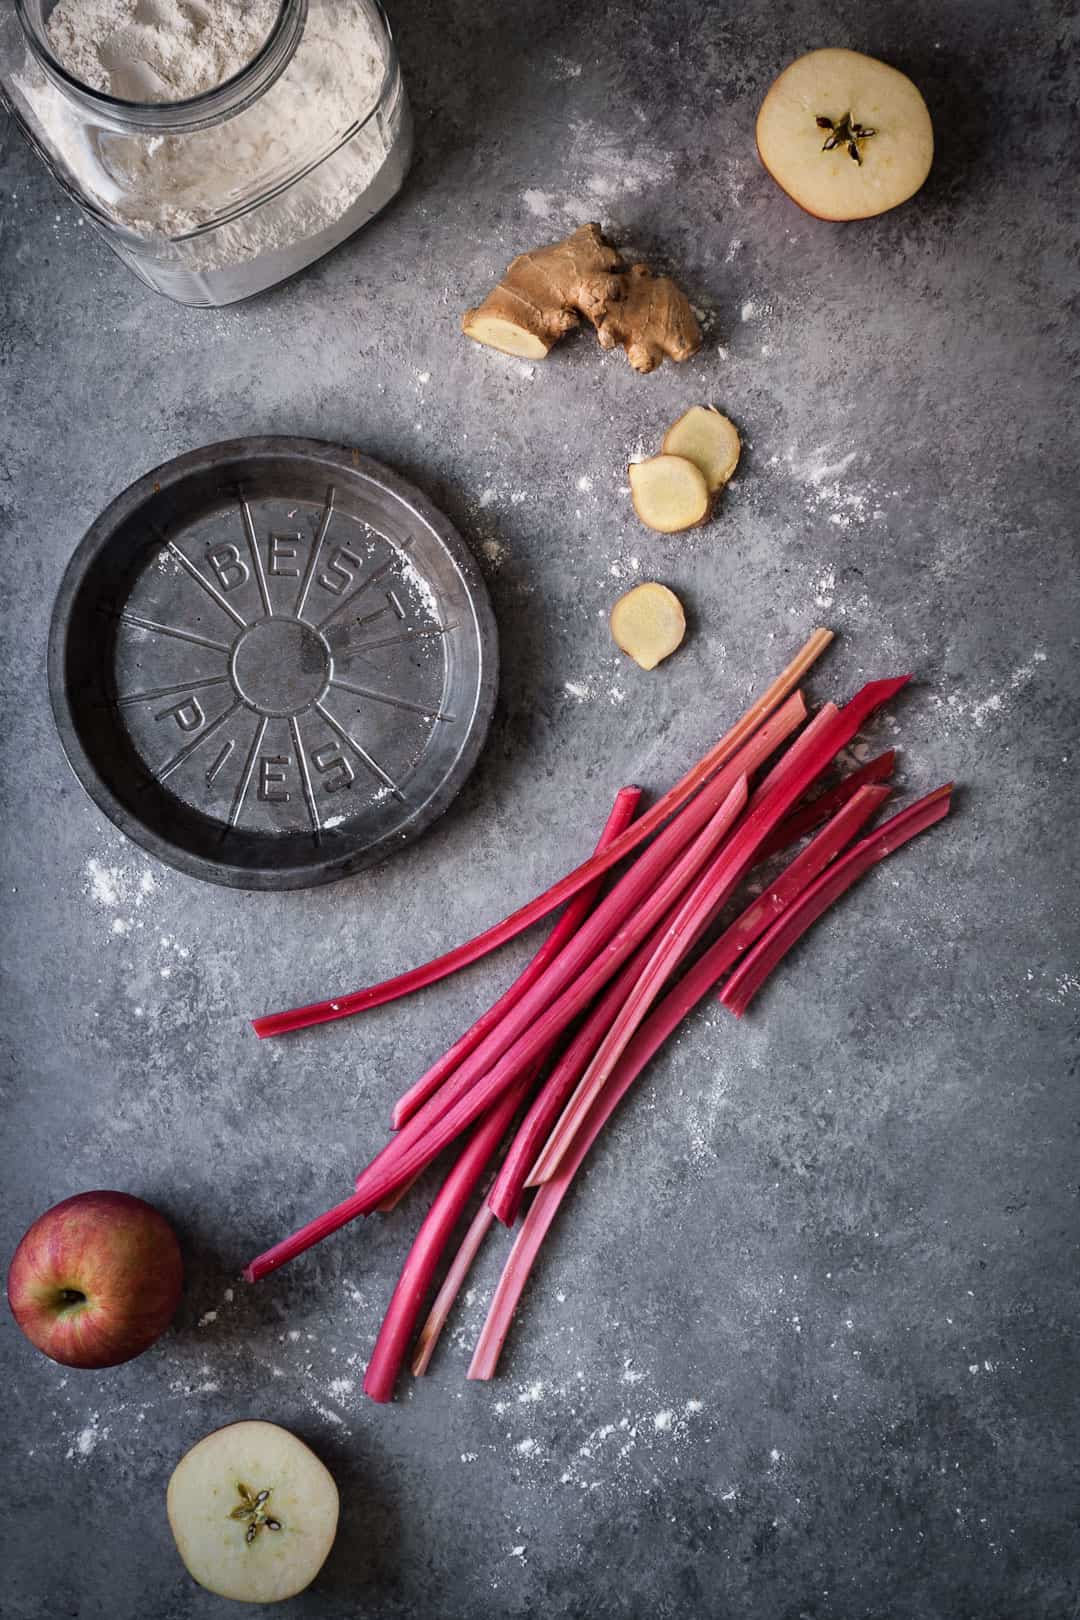 grey surface with metal pie tin and a glass jar of flour along with apples, rhubarb and ginger for rhubarb apple pie with ginger and lemongrass